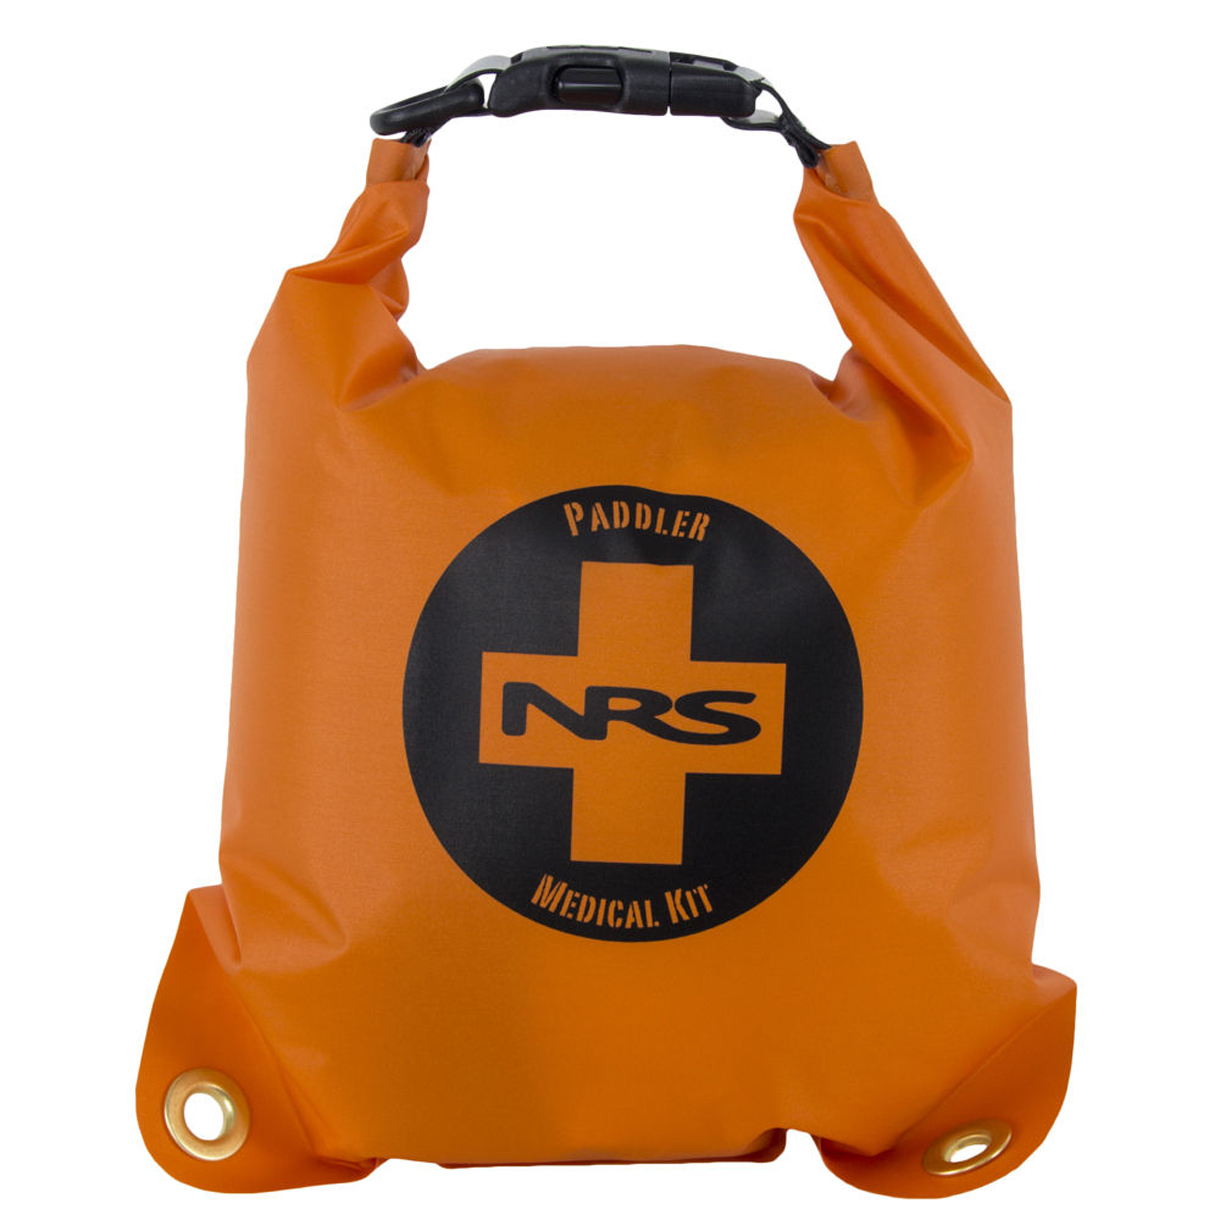 NRS-Paddler-first-aid